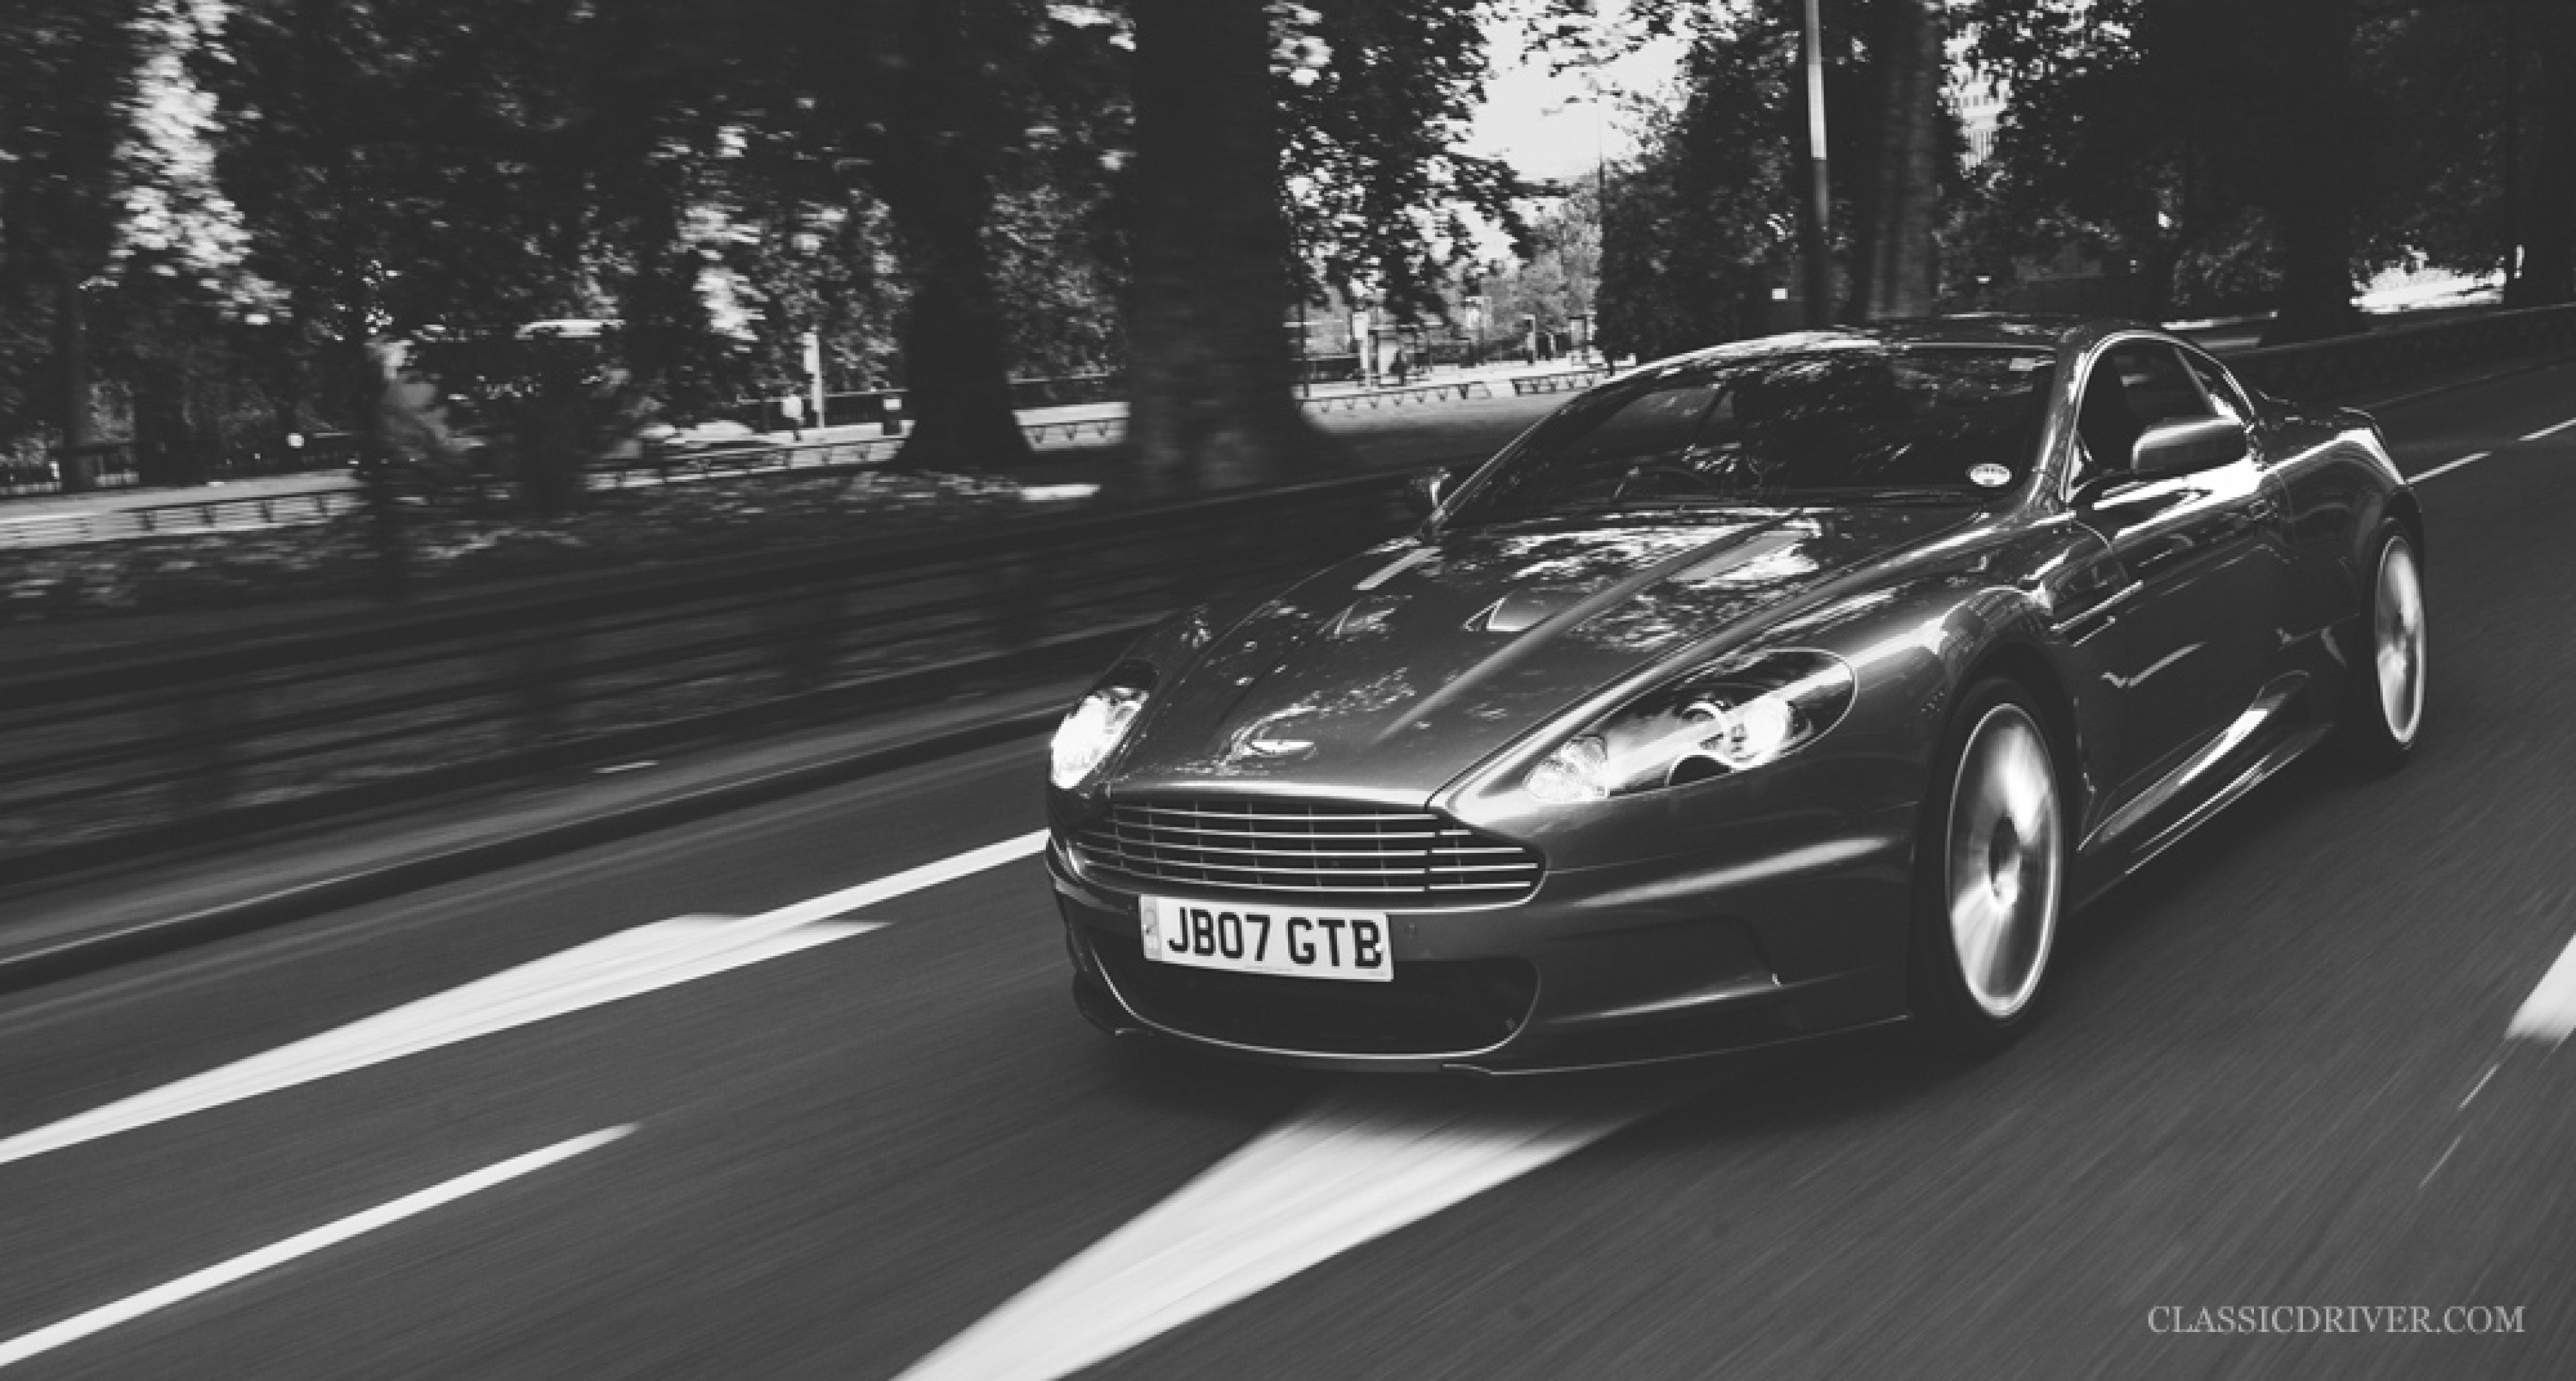 Brotherly Bond Why I Bought The Casino Royale Aston Martin DBS - Aston martin casino royale